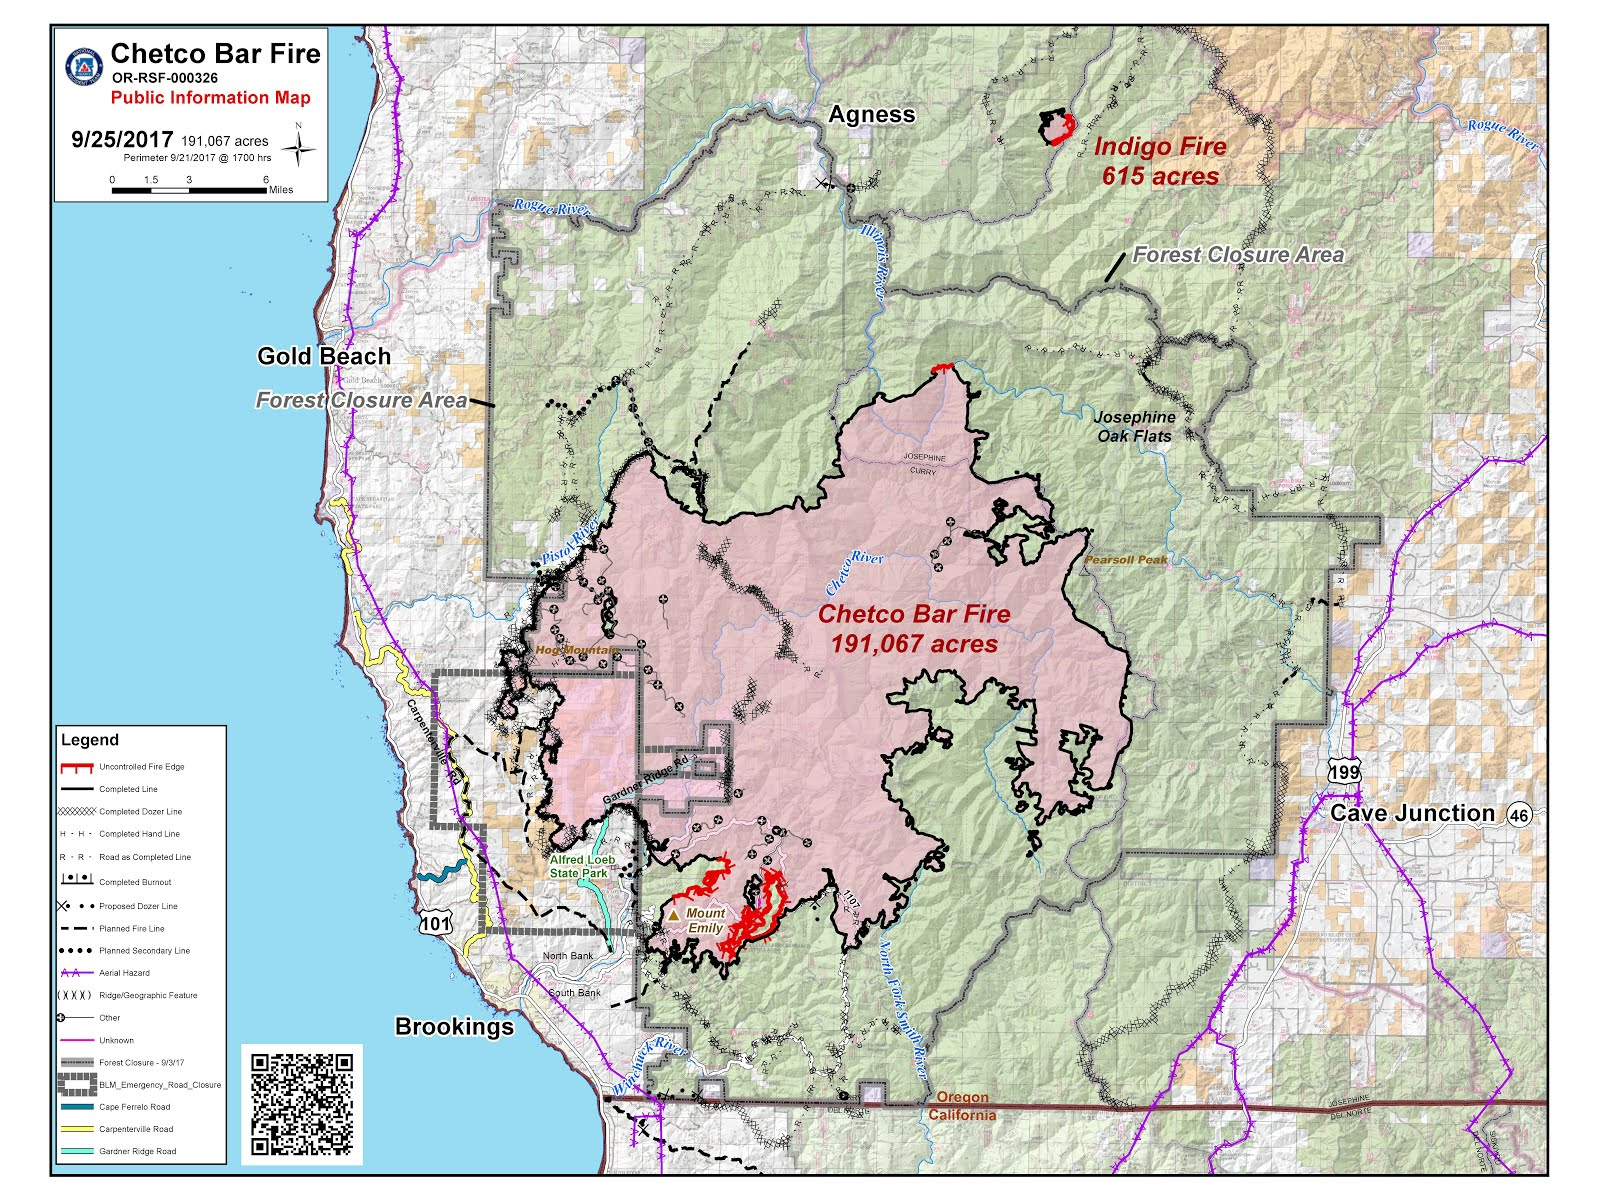 temporary flight restrictions tfr are in effect over the chetco bar fire area before flying near the area pilots are encouraged to check for the most